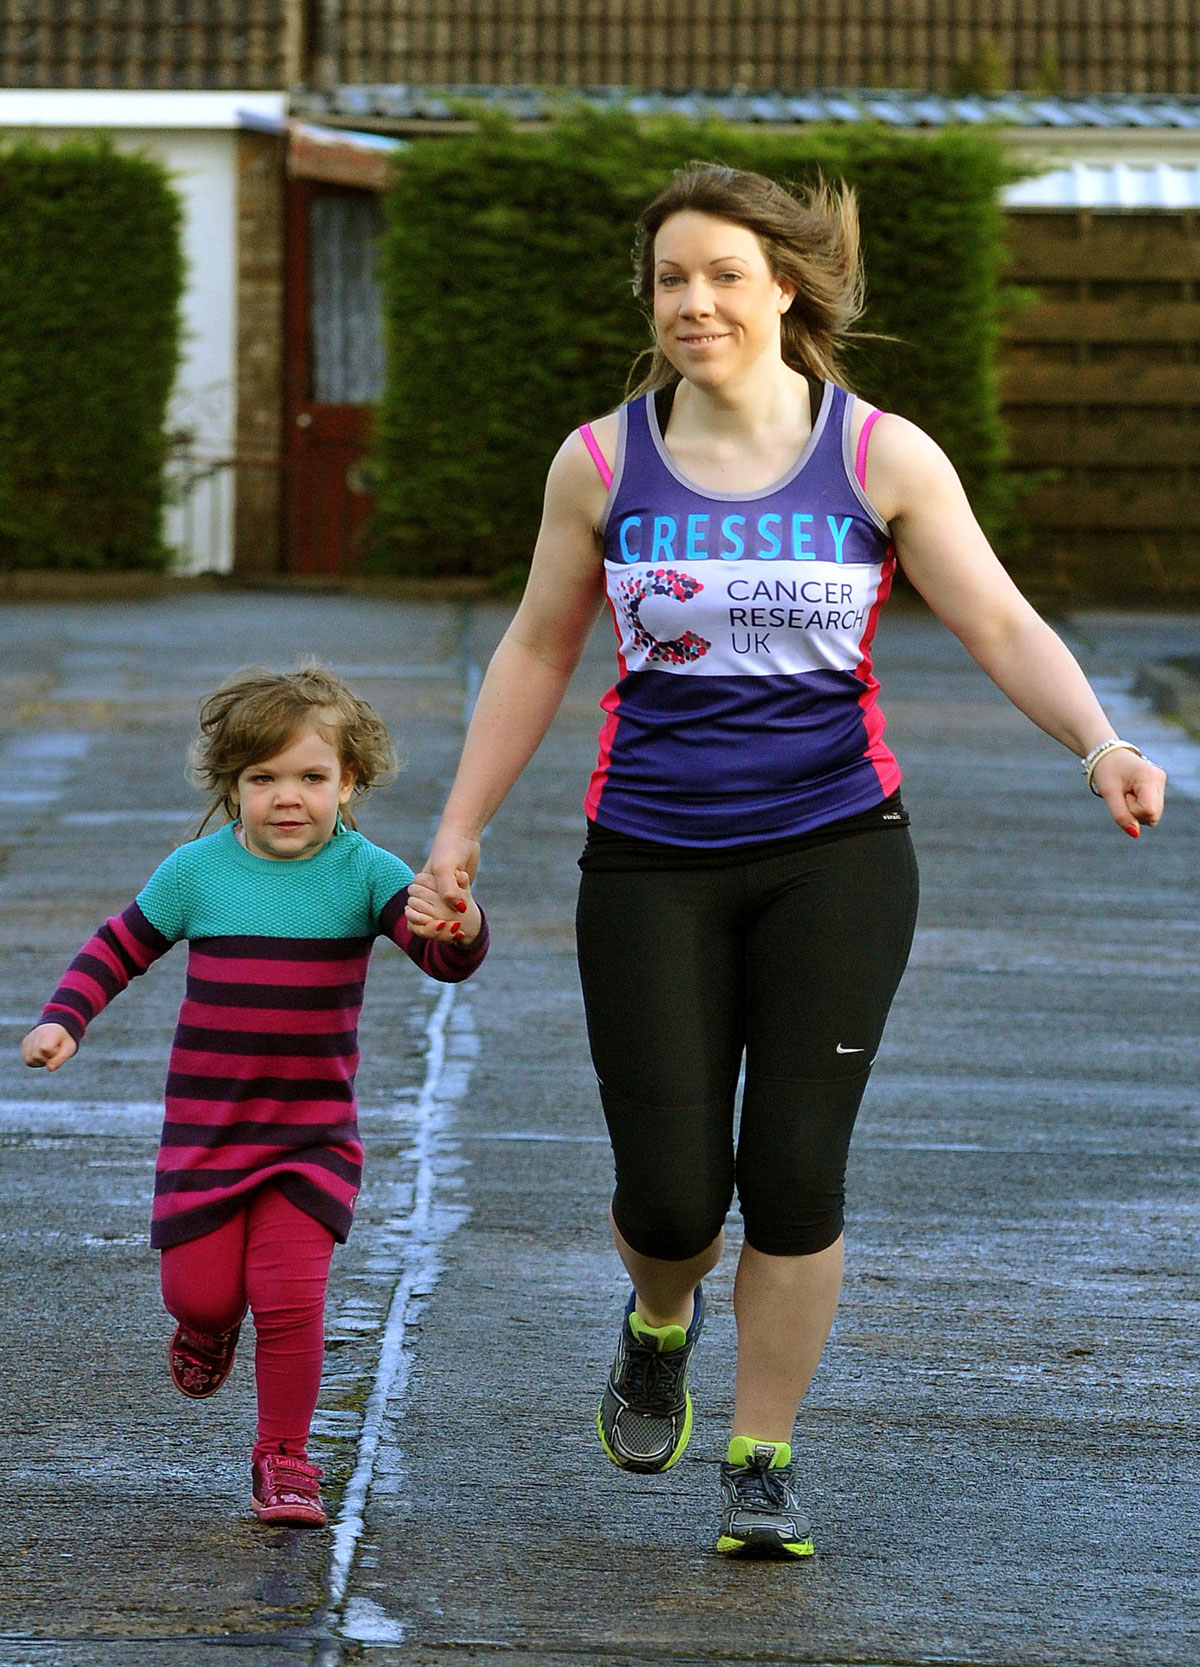 Hannah Cressey, who is running in the London Marathon,  jogging with her three-year-old  daughter Frances at Stockton-on-the-Forest